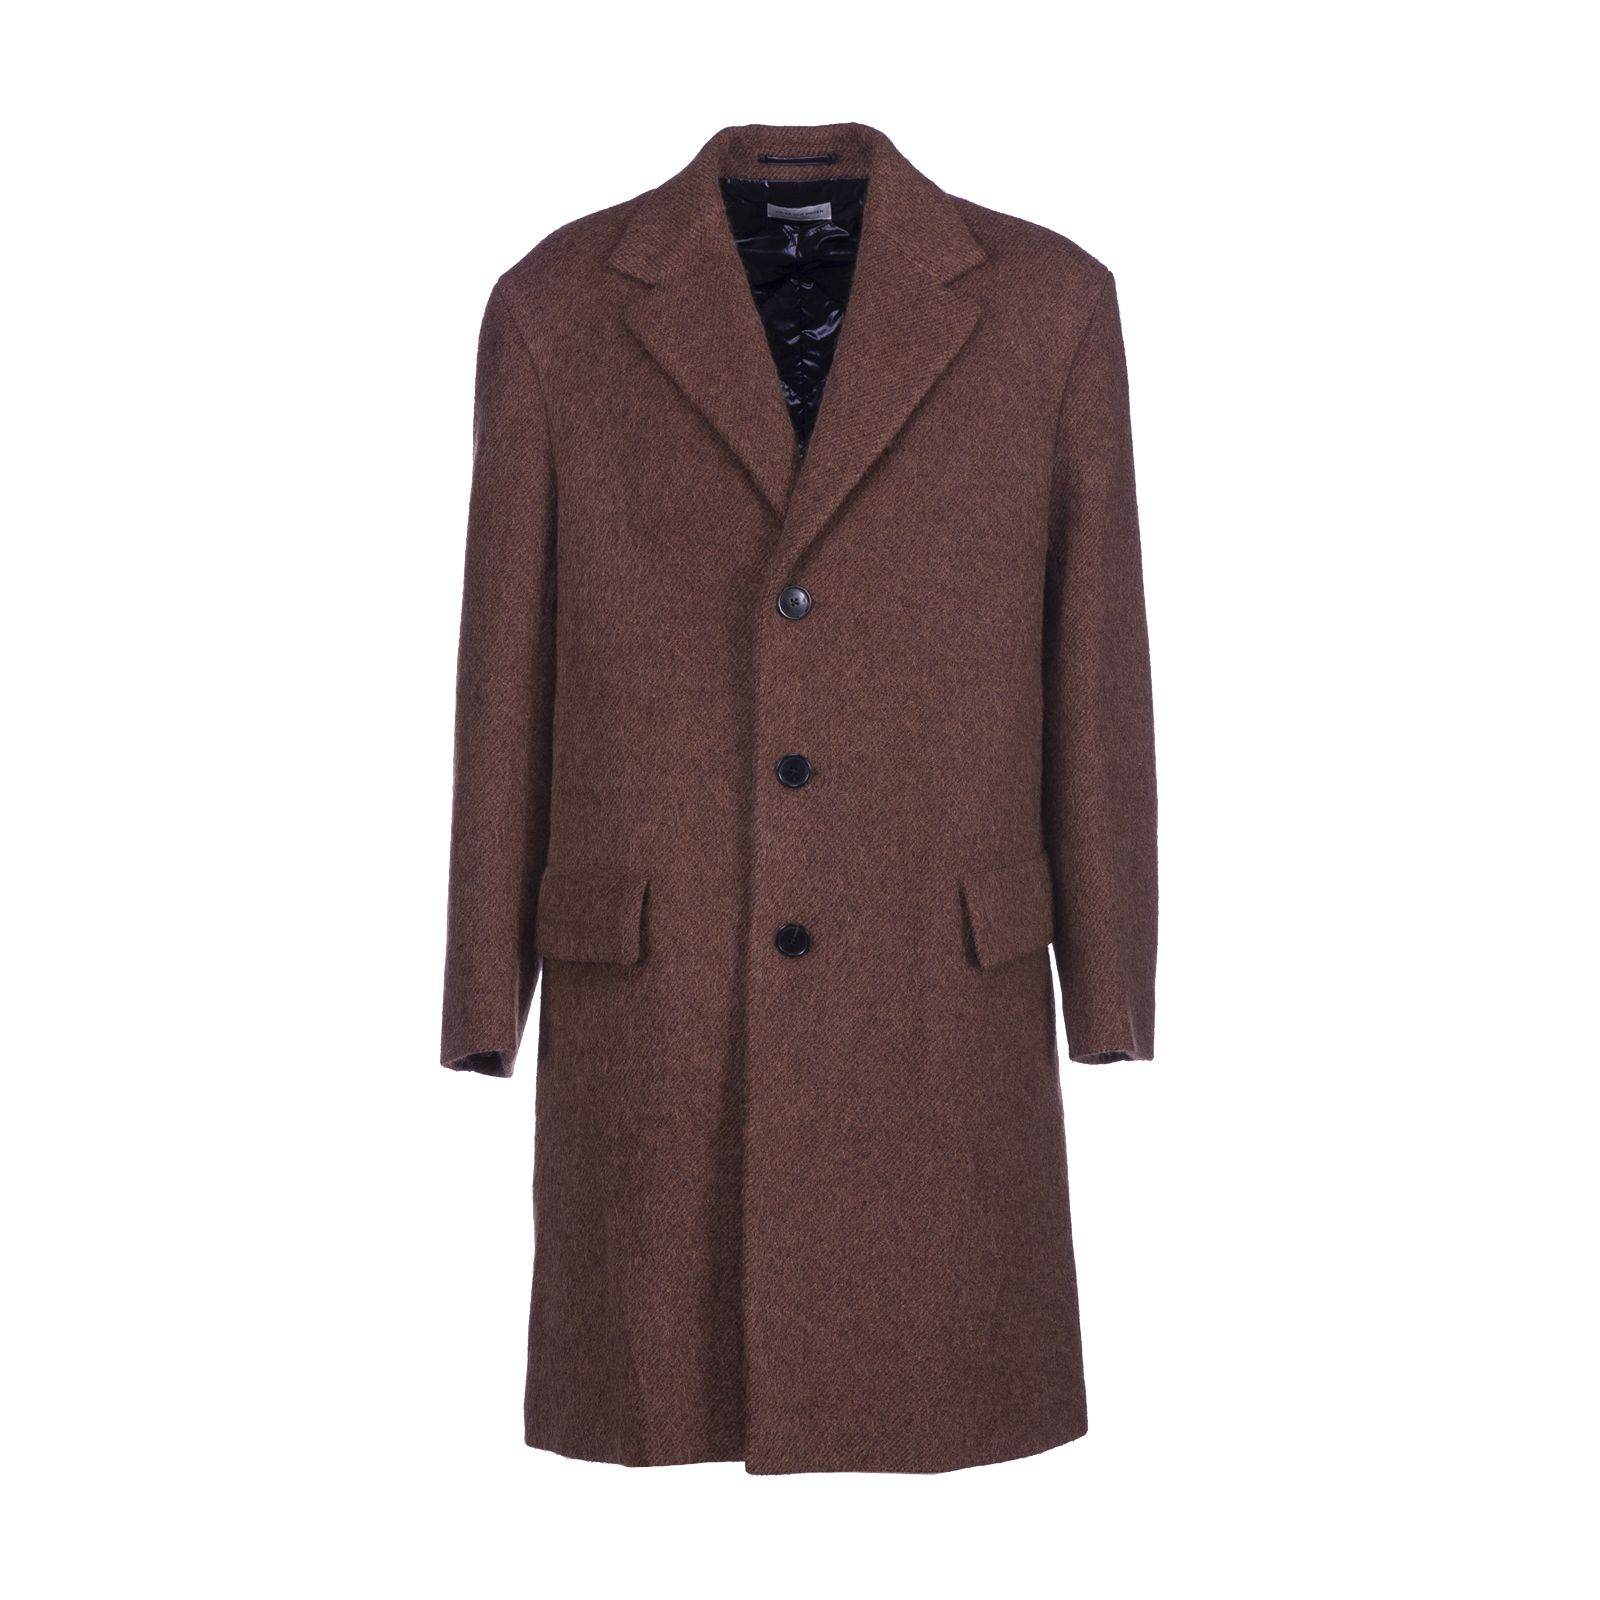 christian single men in coats Tired of always being the third wheel start meeting and dating single guys in coats with mingle2's free coats dating services register free today and find out how.